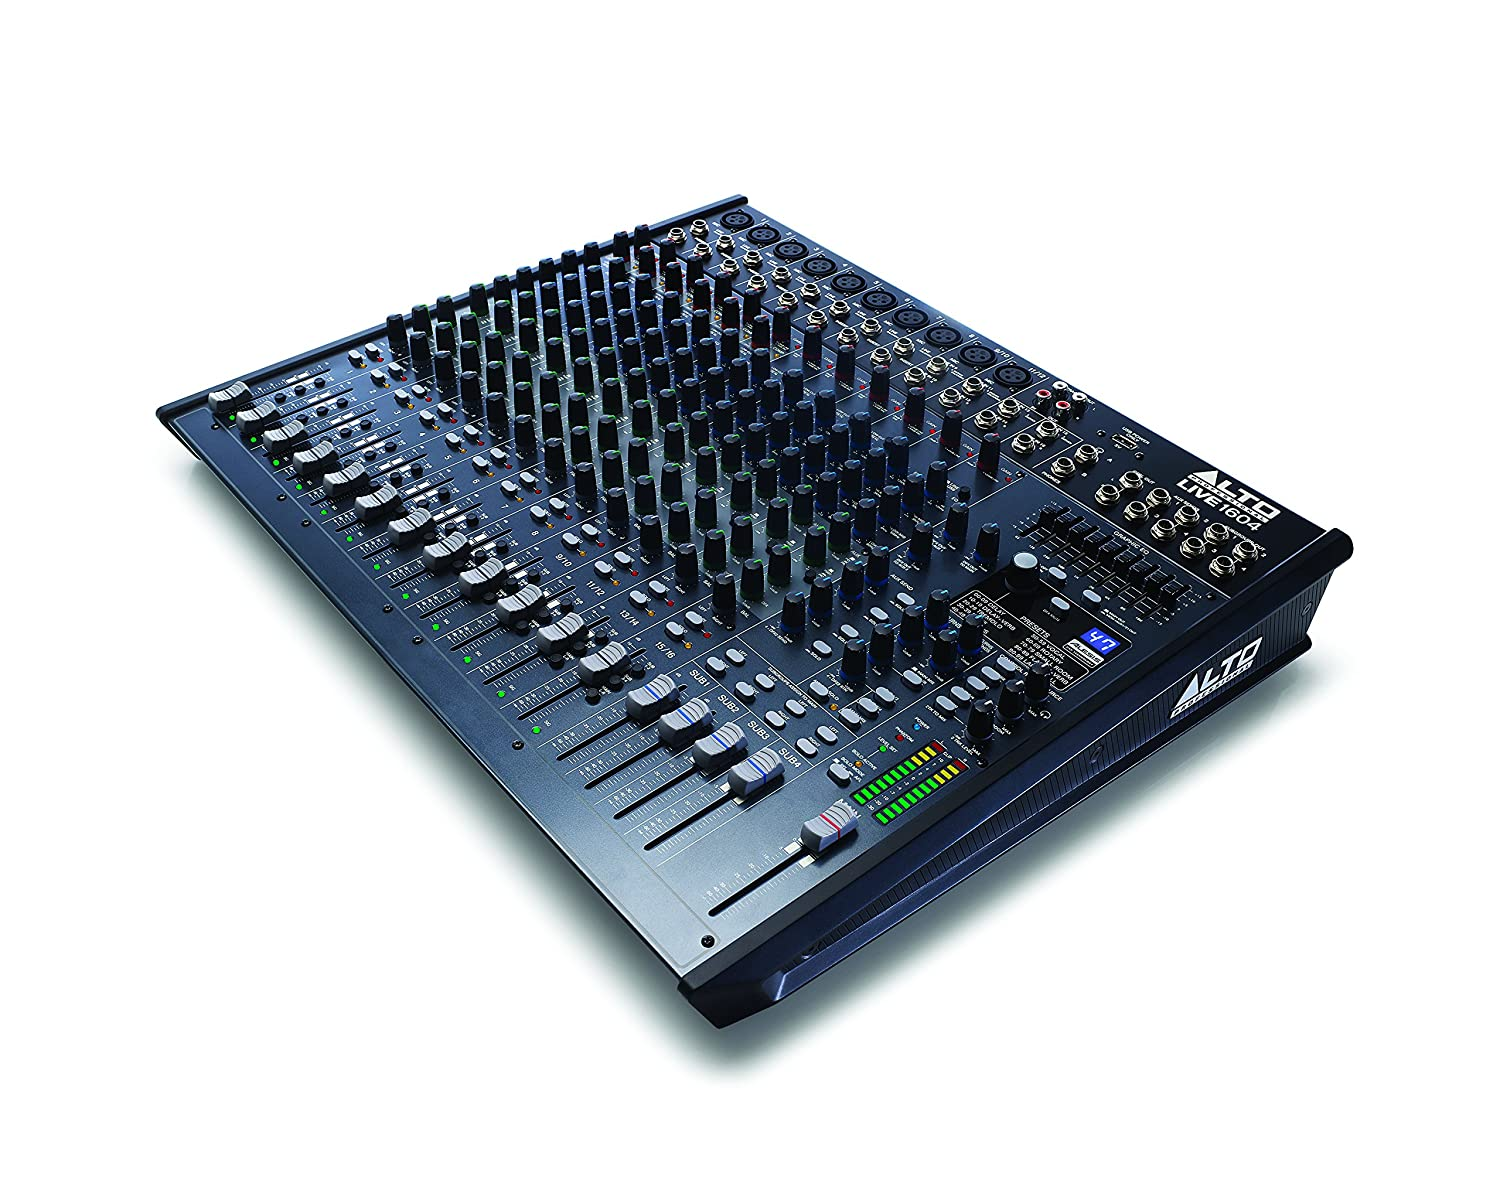 Amazon.com: Alto Professional Live 1604 | 16-Channel / 4-Bus Mixer with 10 XLR inputs: Musical Instruments